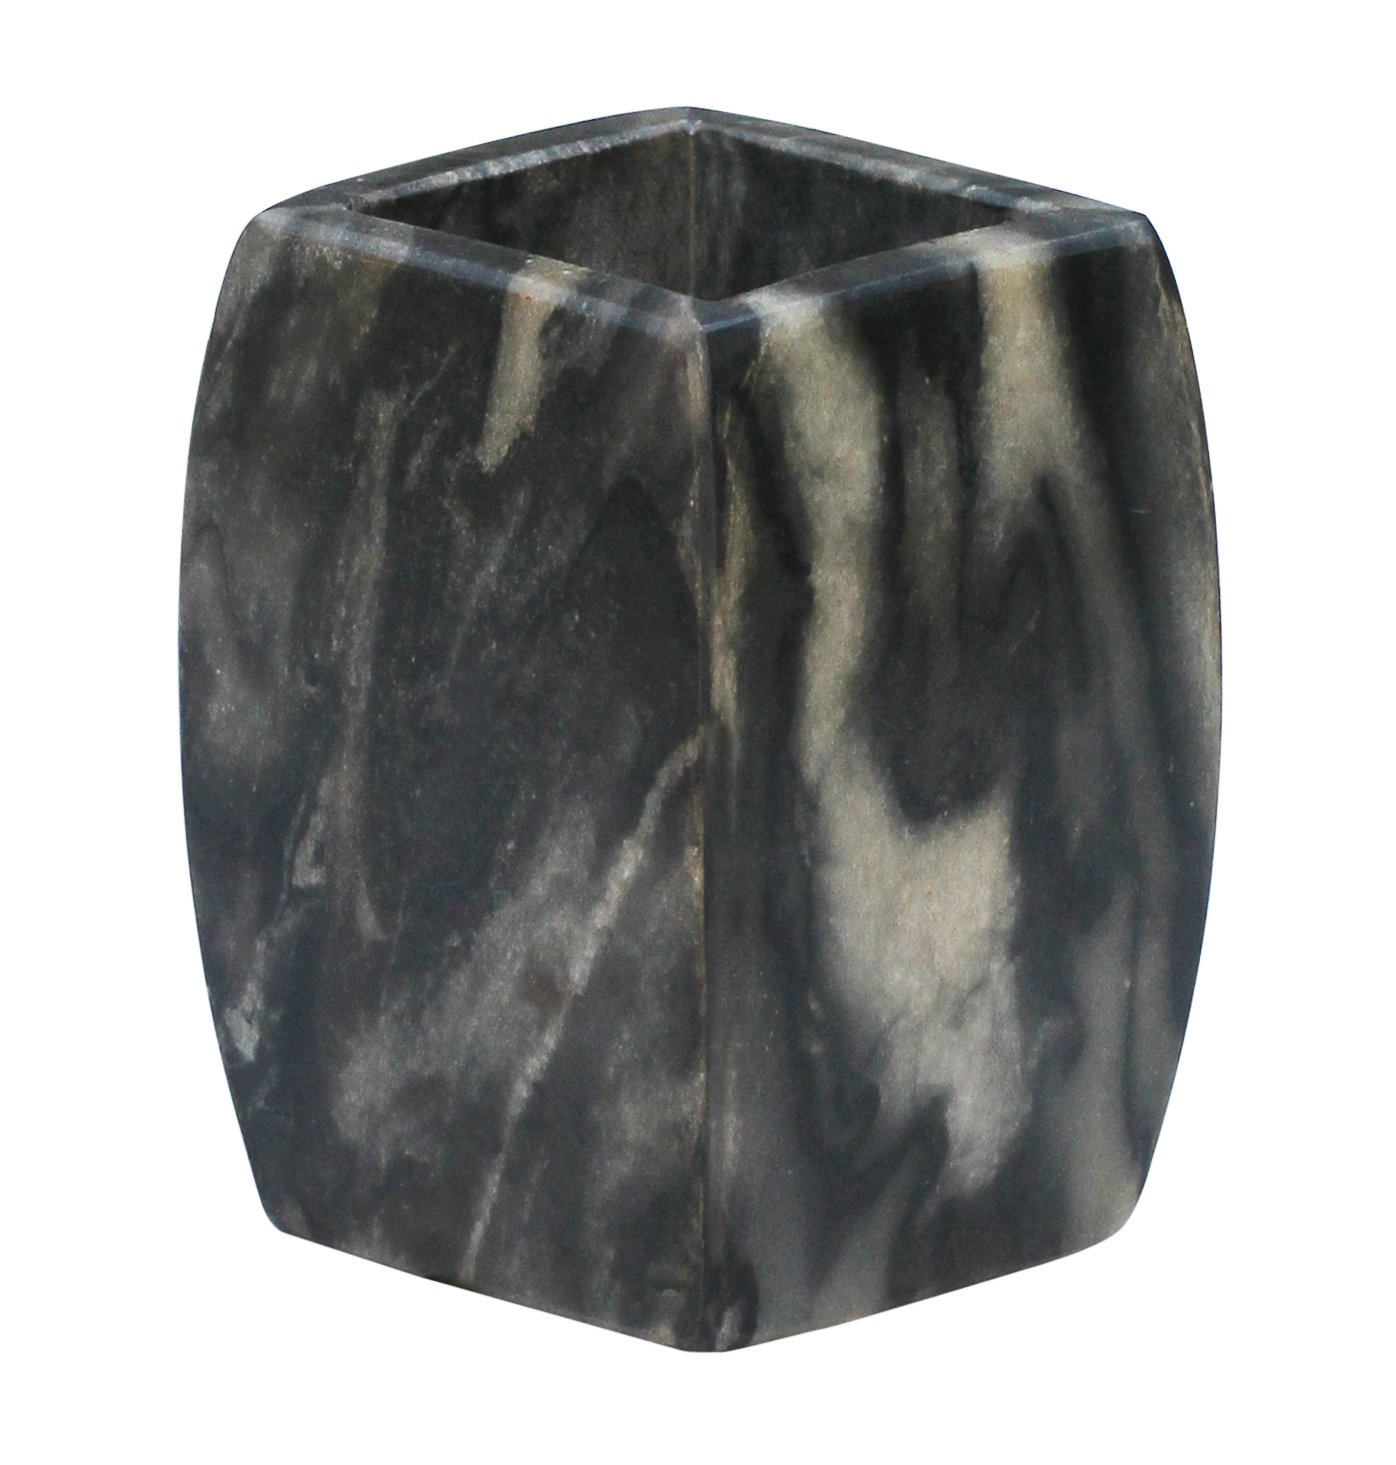 bathtumbler cup 4 handmade natural gray black marble tumbler bath ensemble stone art unique bathroom kitchen sink accessories home kitchen